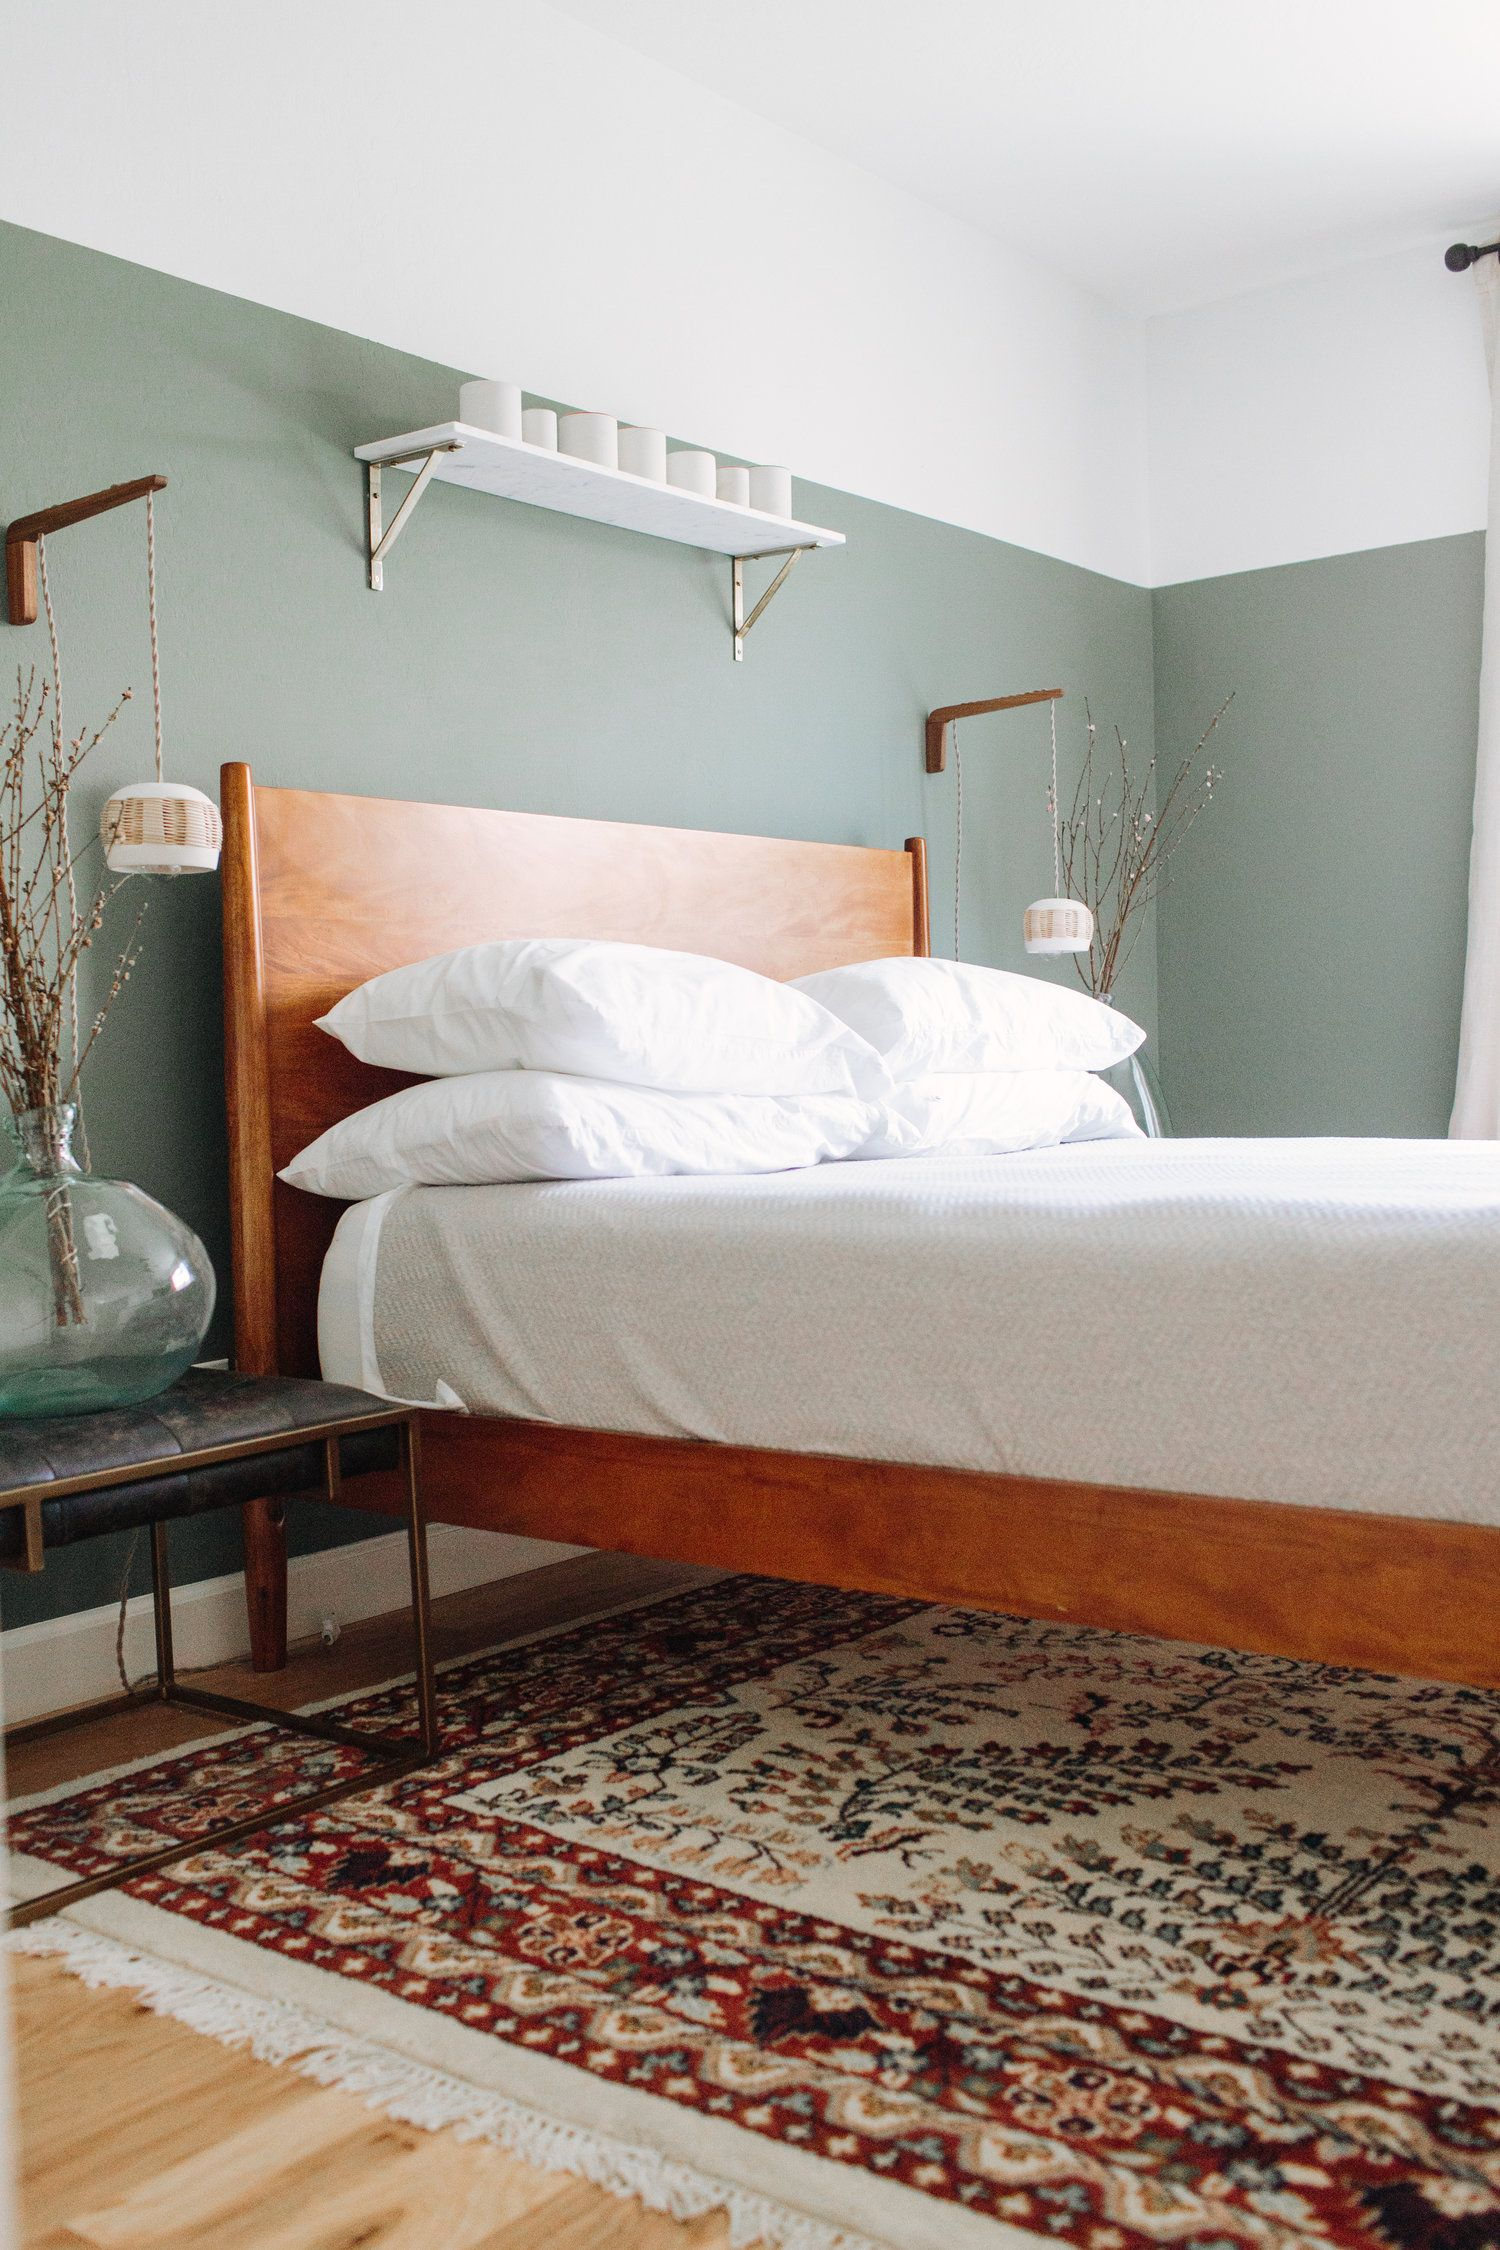 Modern Bed Traditional Rug Modern Lights And Sage Green Paint Home Decor Bedroom Eclectic Bedroom Home Decor